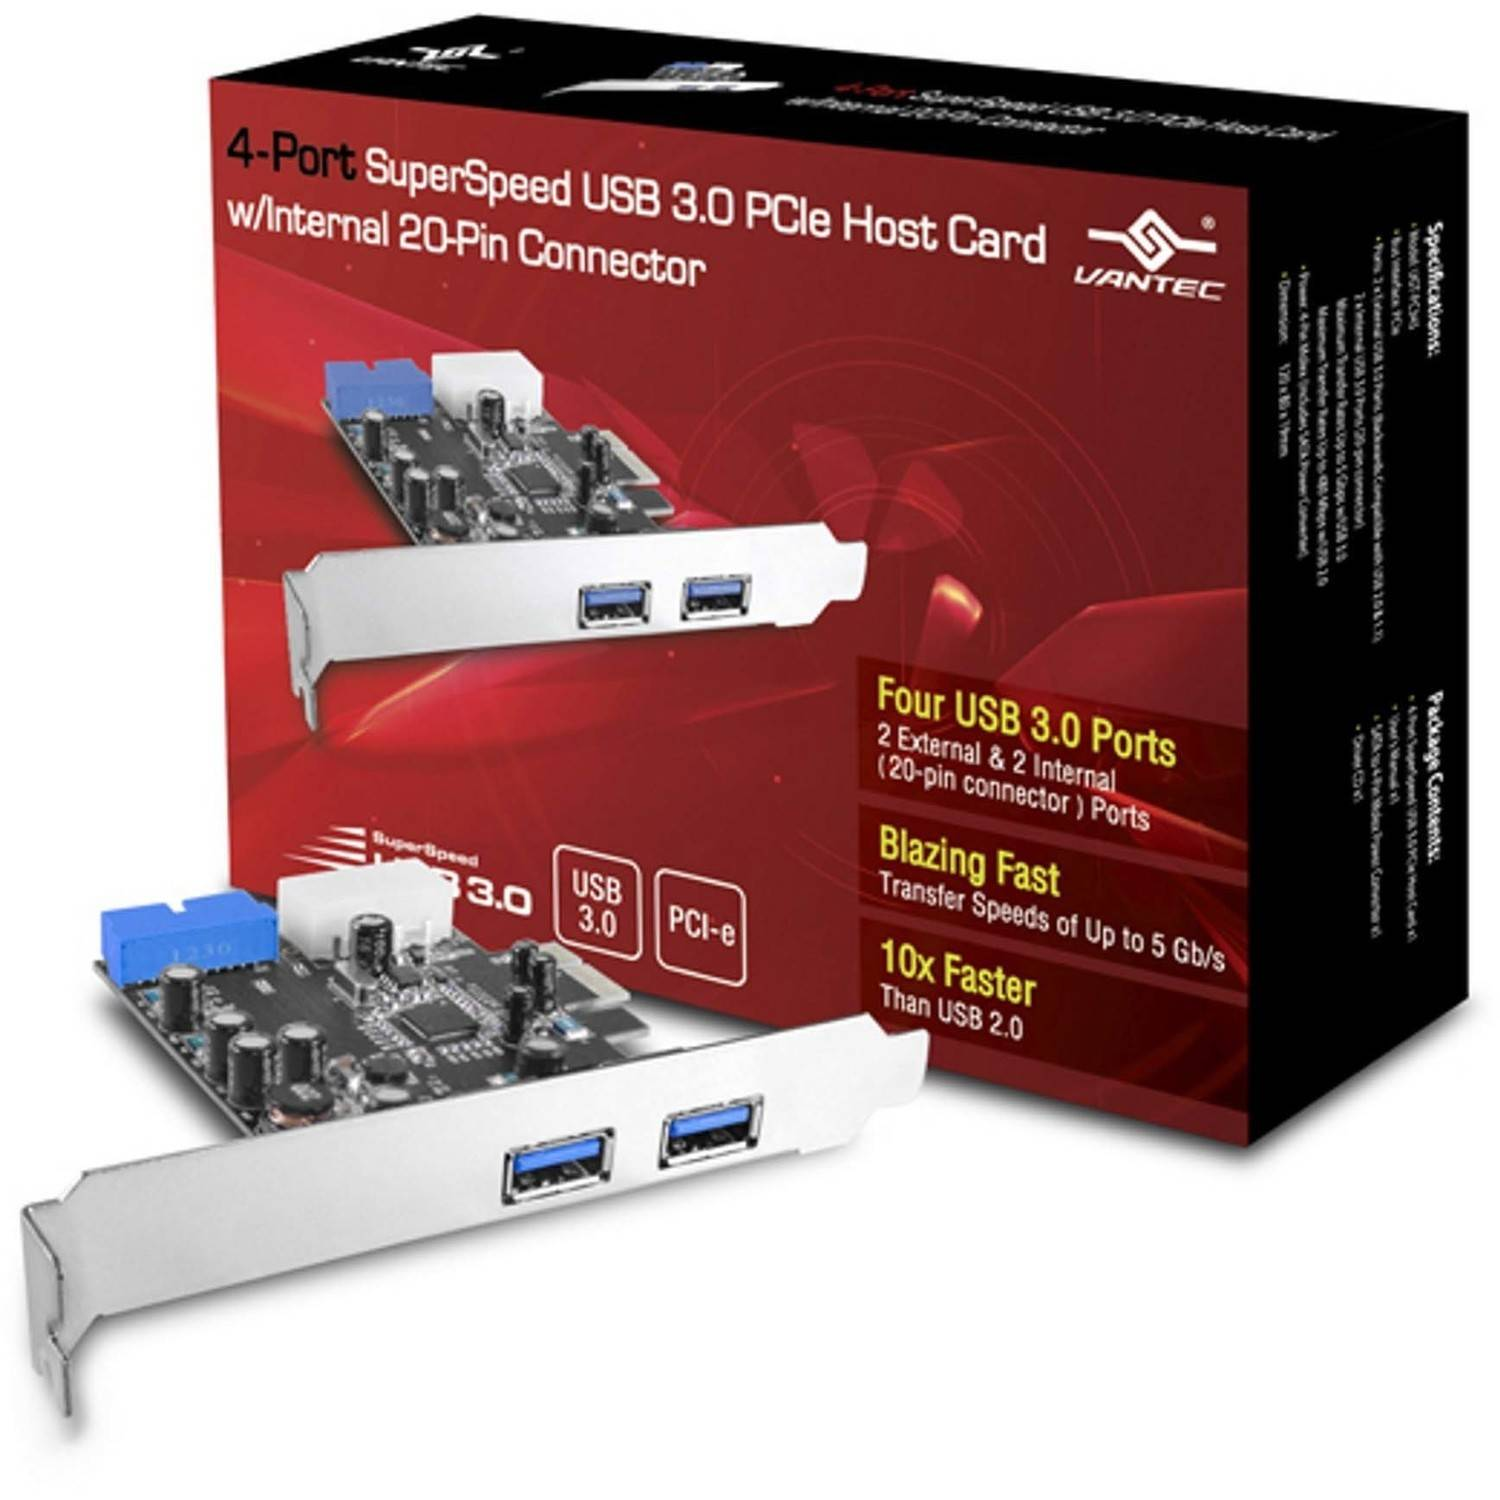 Vantec UGT-PC345 4-Port USB 3.0 PCIe with internal 20-Pin Host Card, Silver